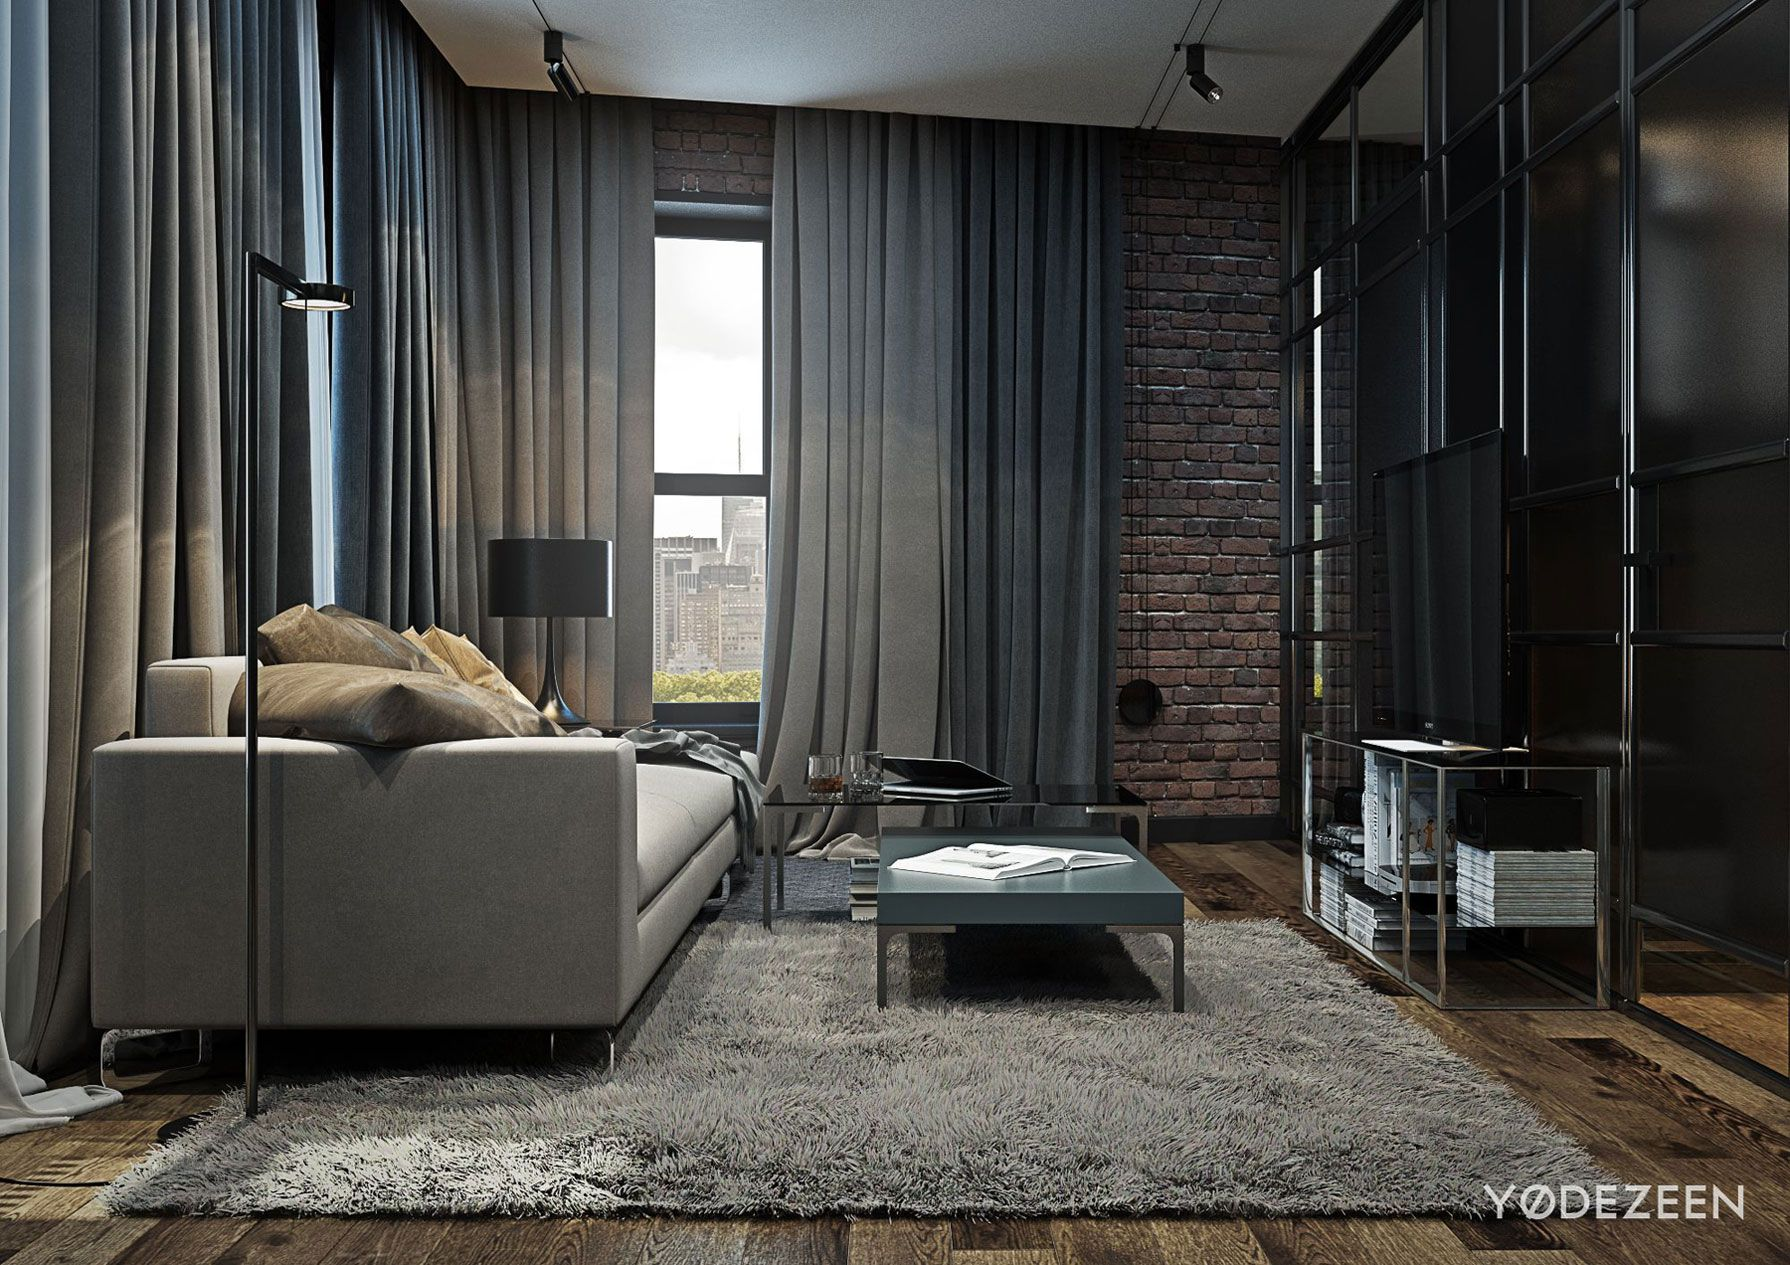 Sitzbank Industrial Loft Apartment In Brooklyn By Yodezeen - Caandesign